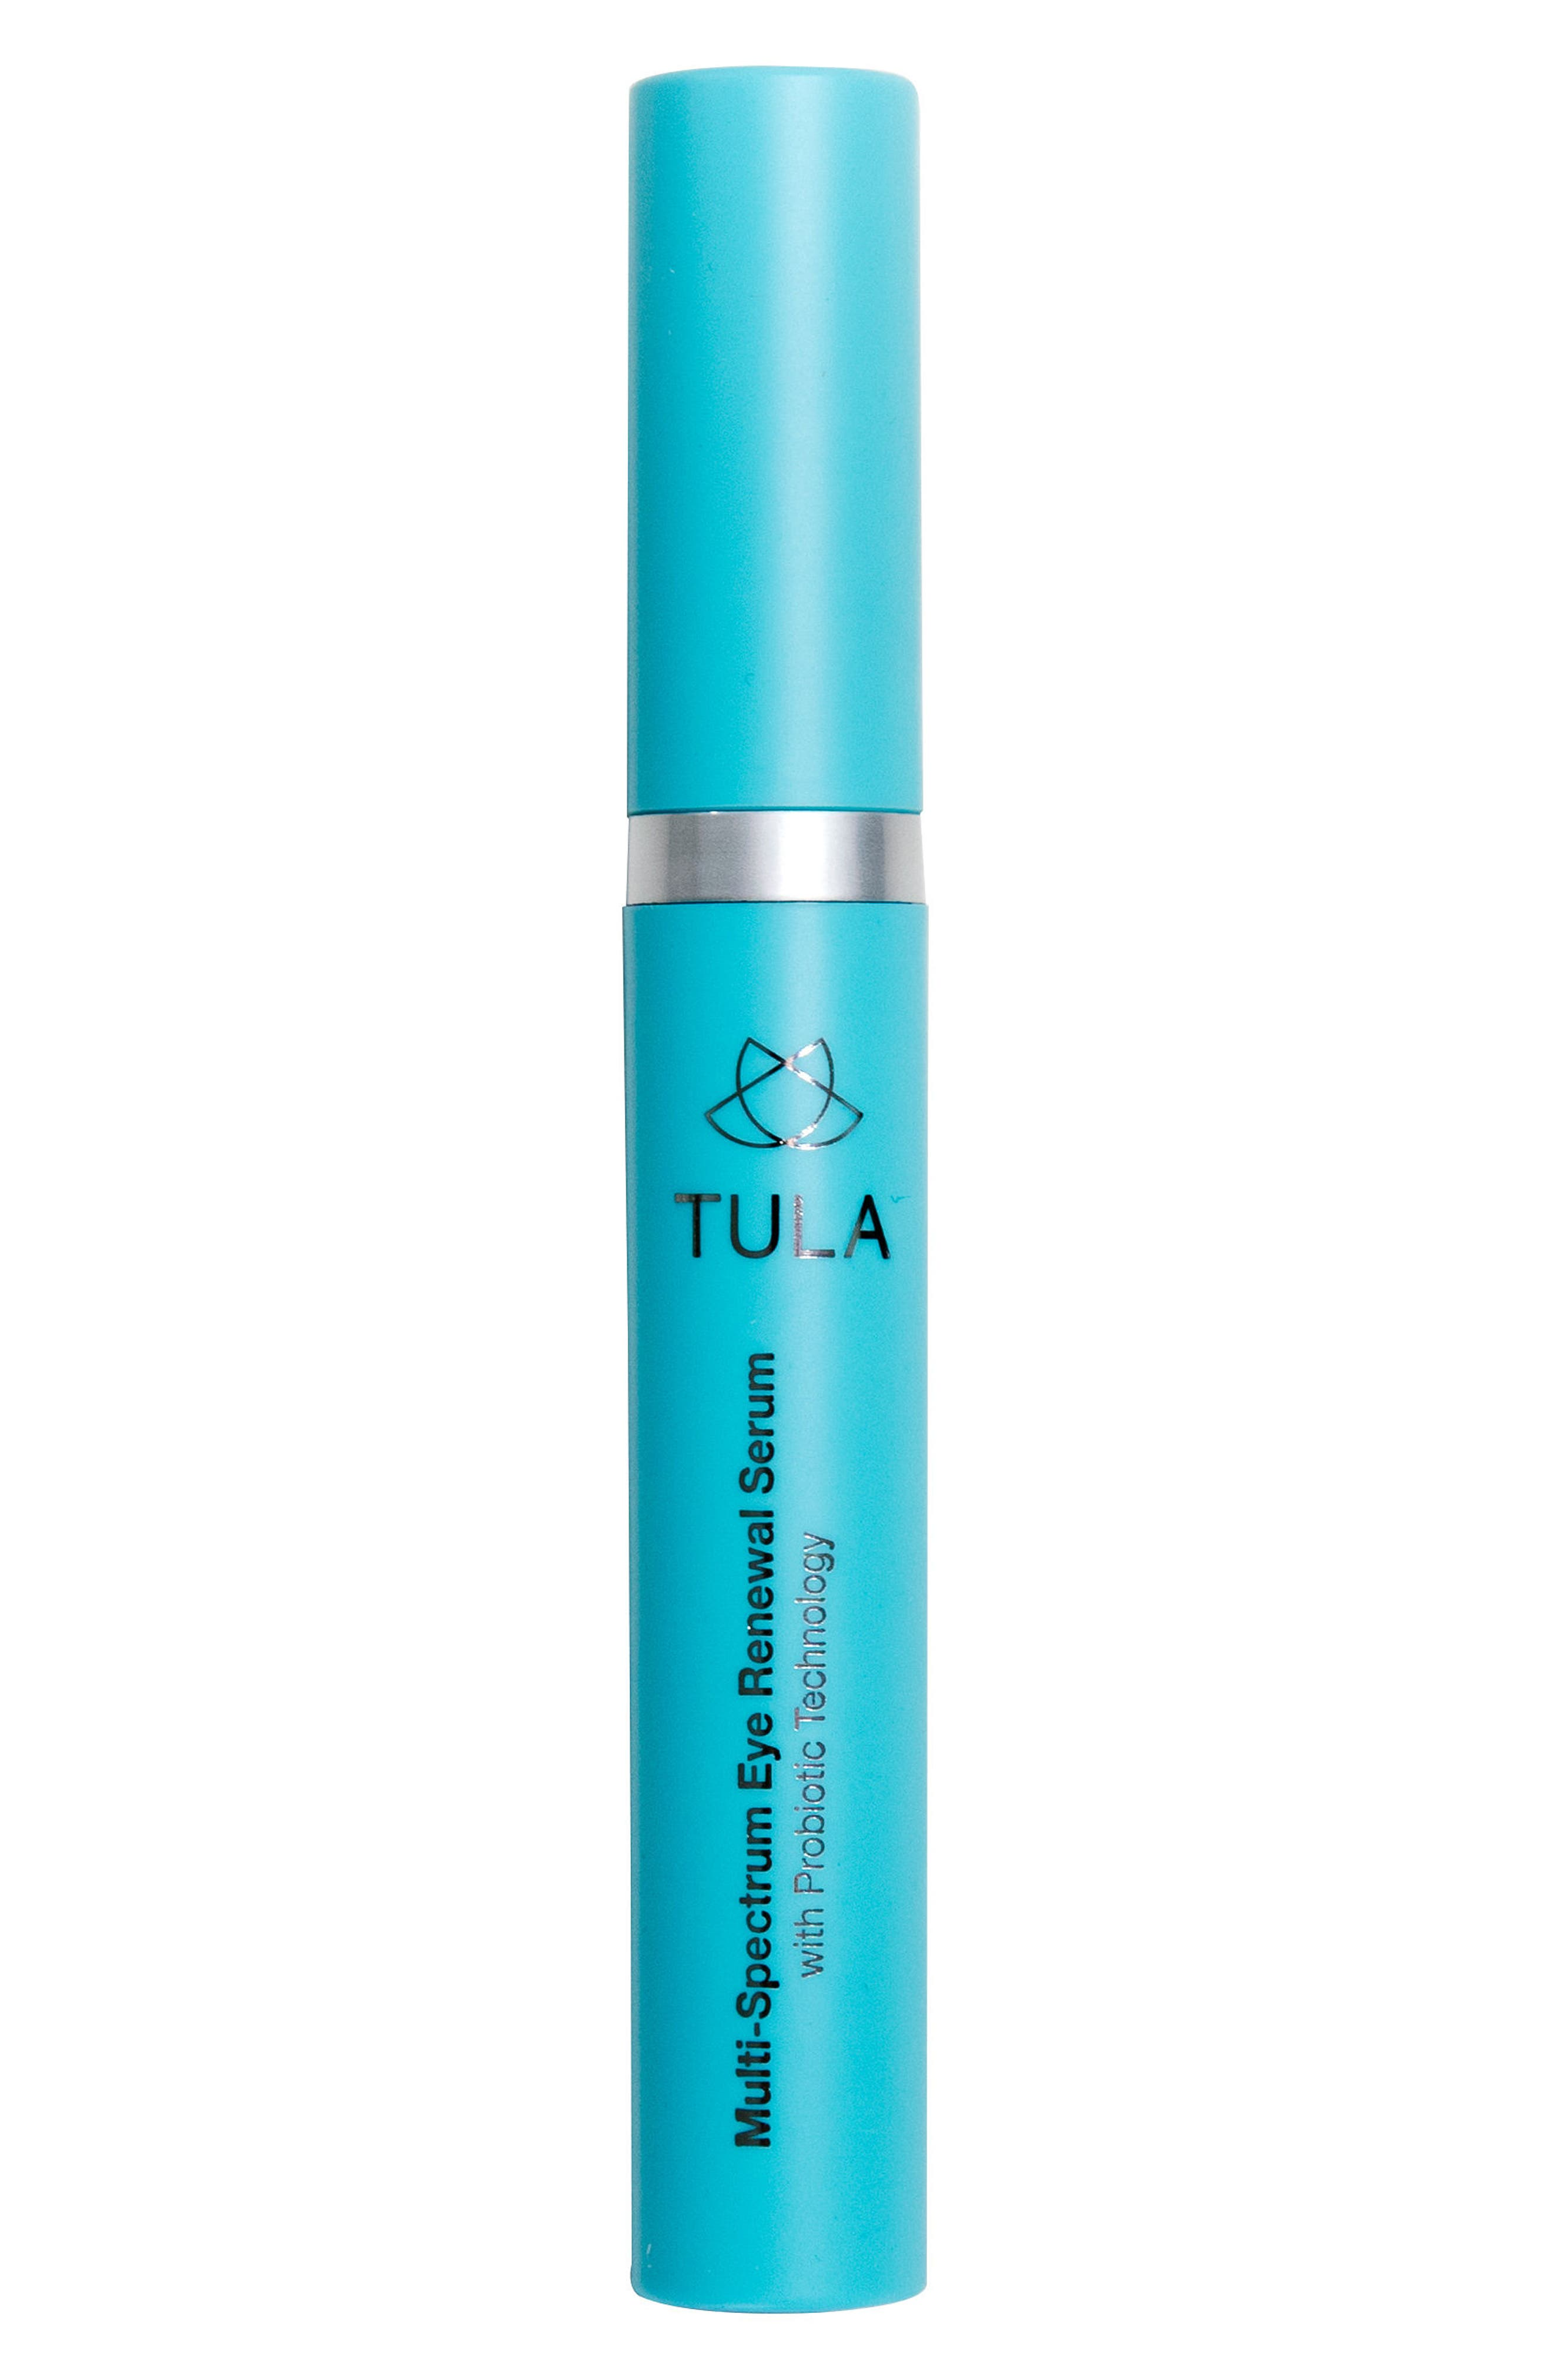 Tula Probiotic Skincare Multi-Spectrum Eye Renewal Serum